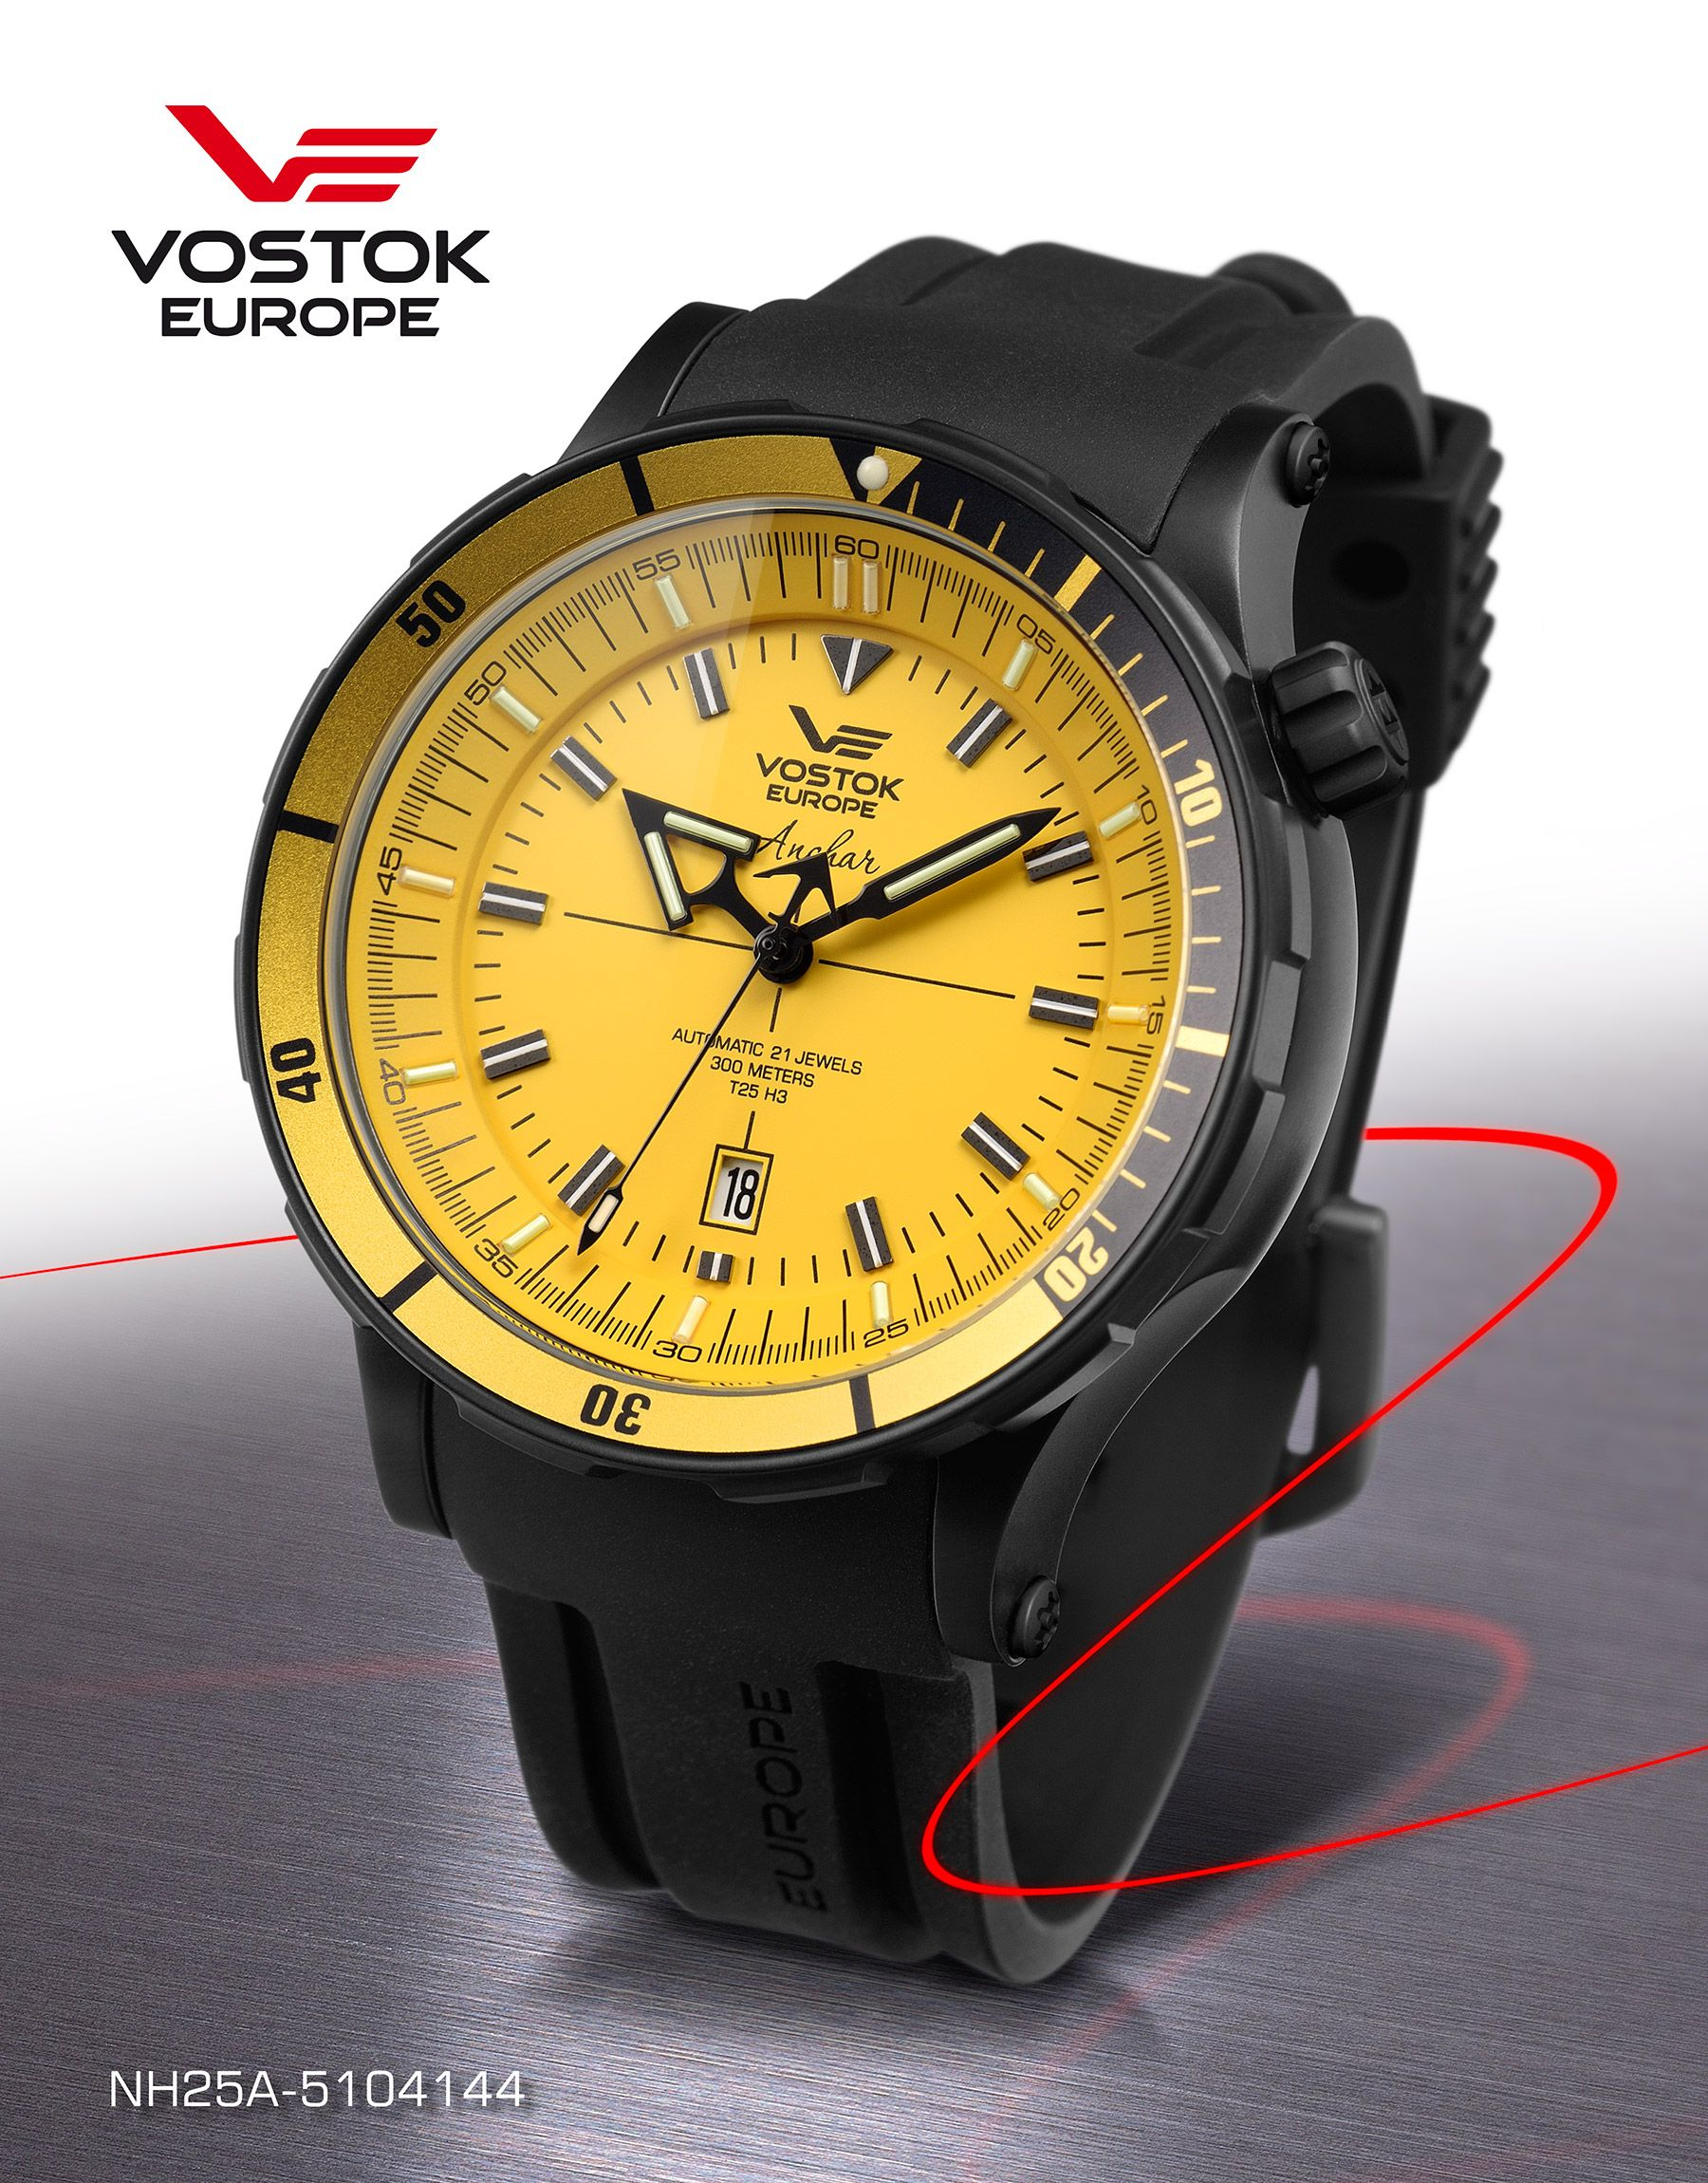 Affordable luxury, adventure and extreme sports watches with GTLS technology. Vostok is a unique fusion of tradition, innovation and cost effective style. Retail price between Rs.35,000 and Rs.60,000 plus VAT. Available at www.chronowatchcompany.com